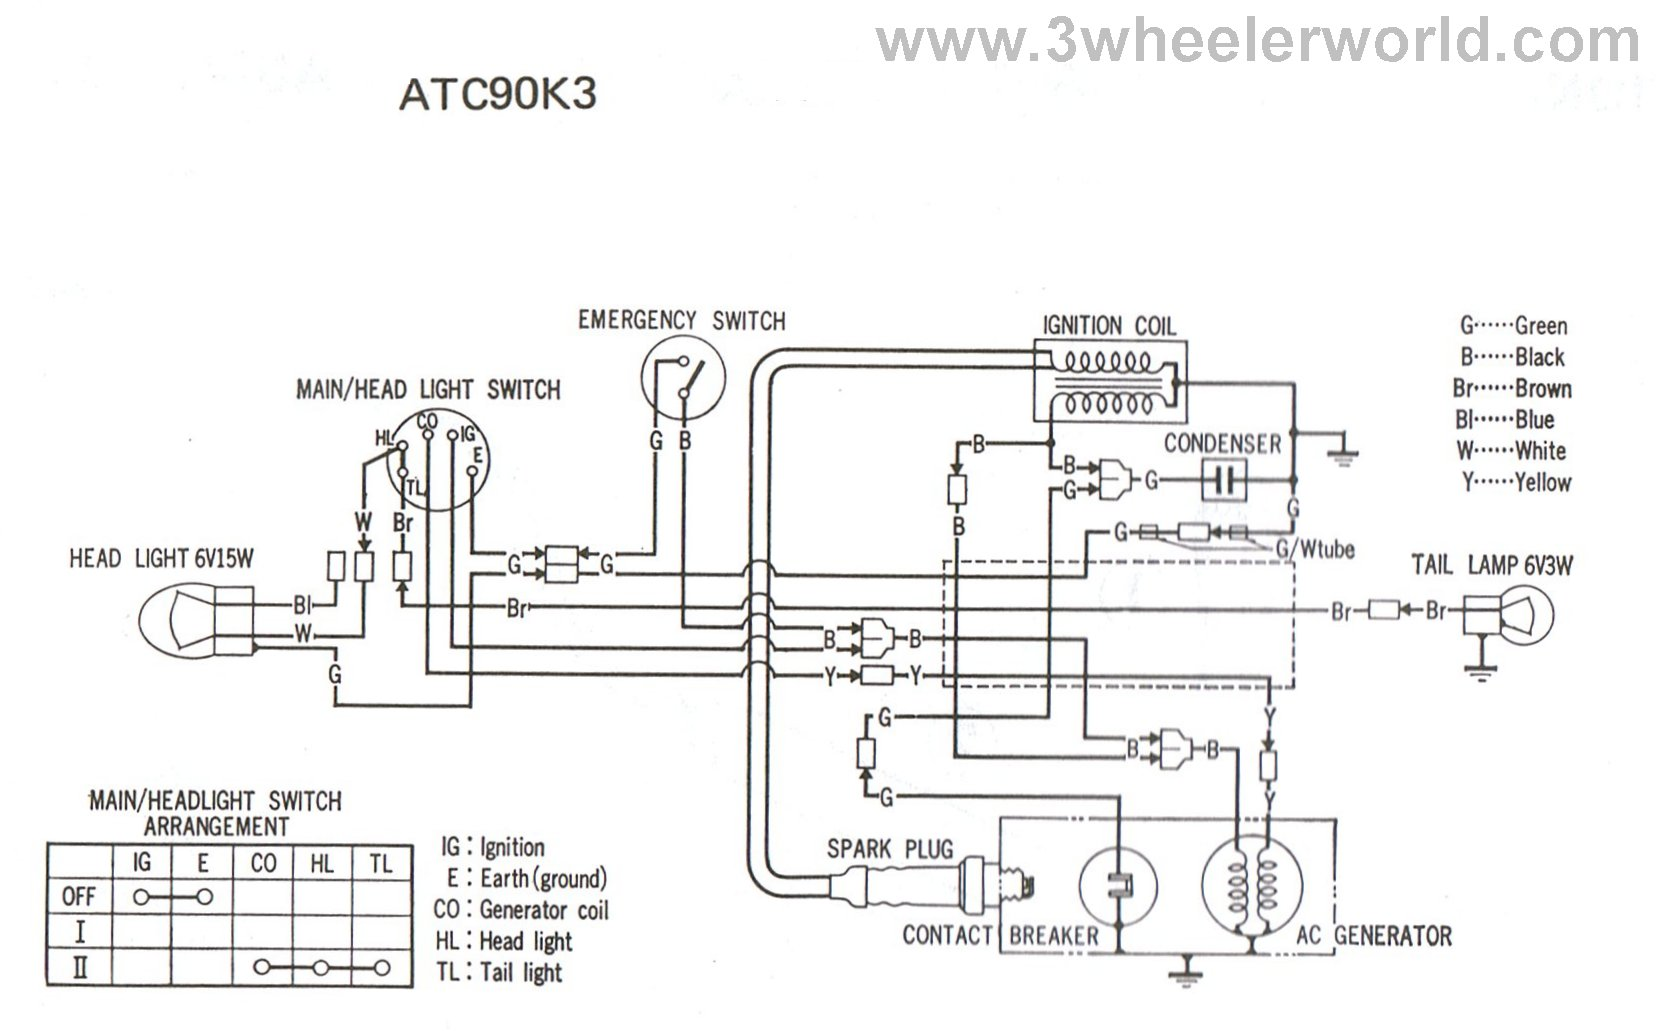 ATC90K3HM polaris predator 90 wiring diagram polaris 90 service manual 2000 polaris scrambler 500 wiring diagram at creativeand.co